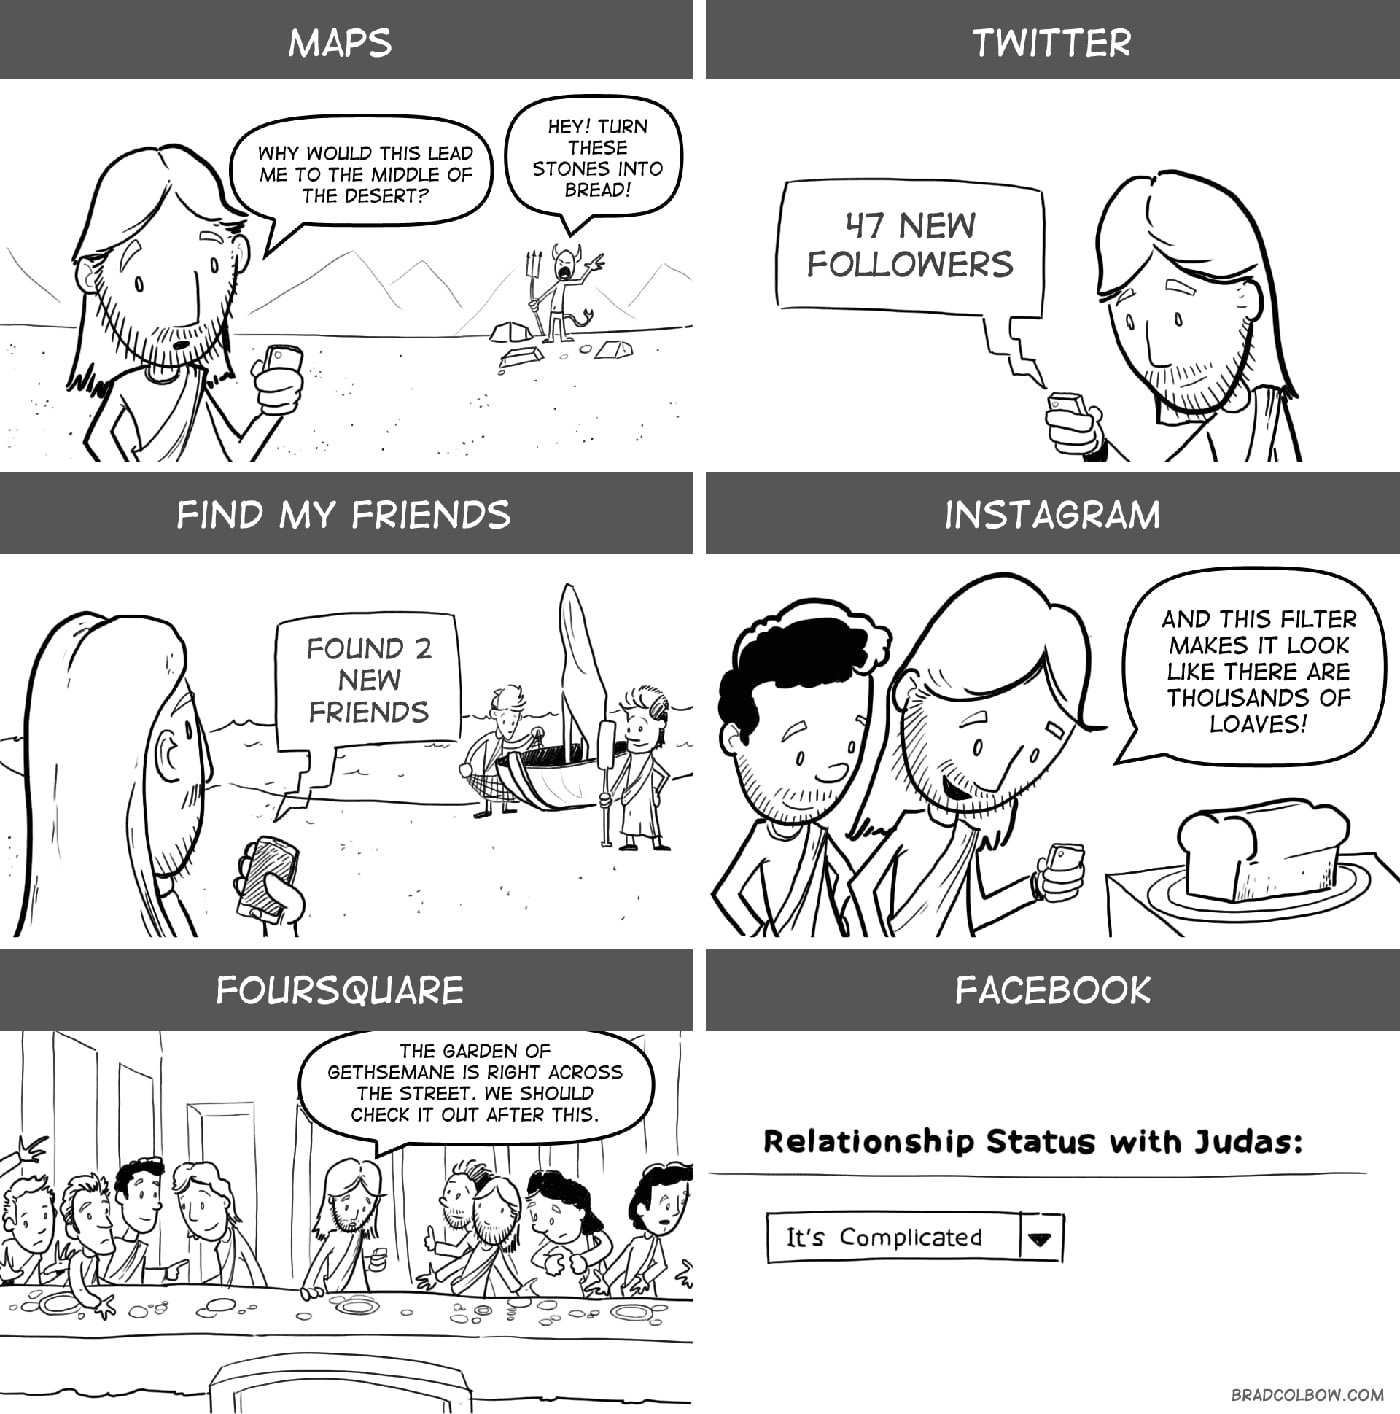 If Jesus Had An iPhone & Joined Twitter [Comic]